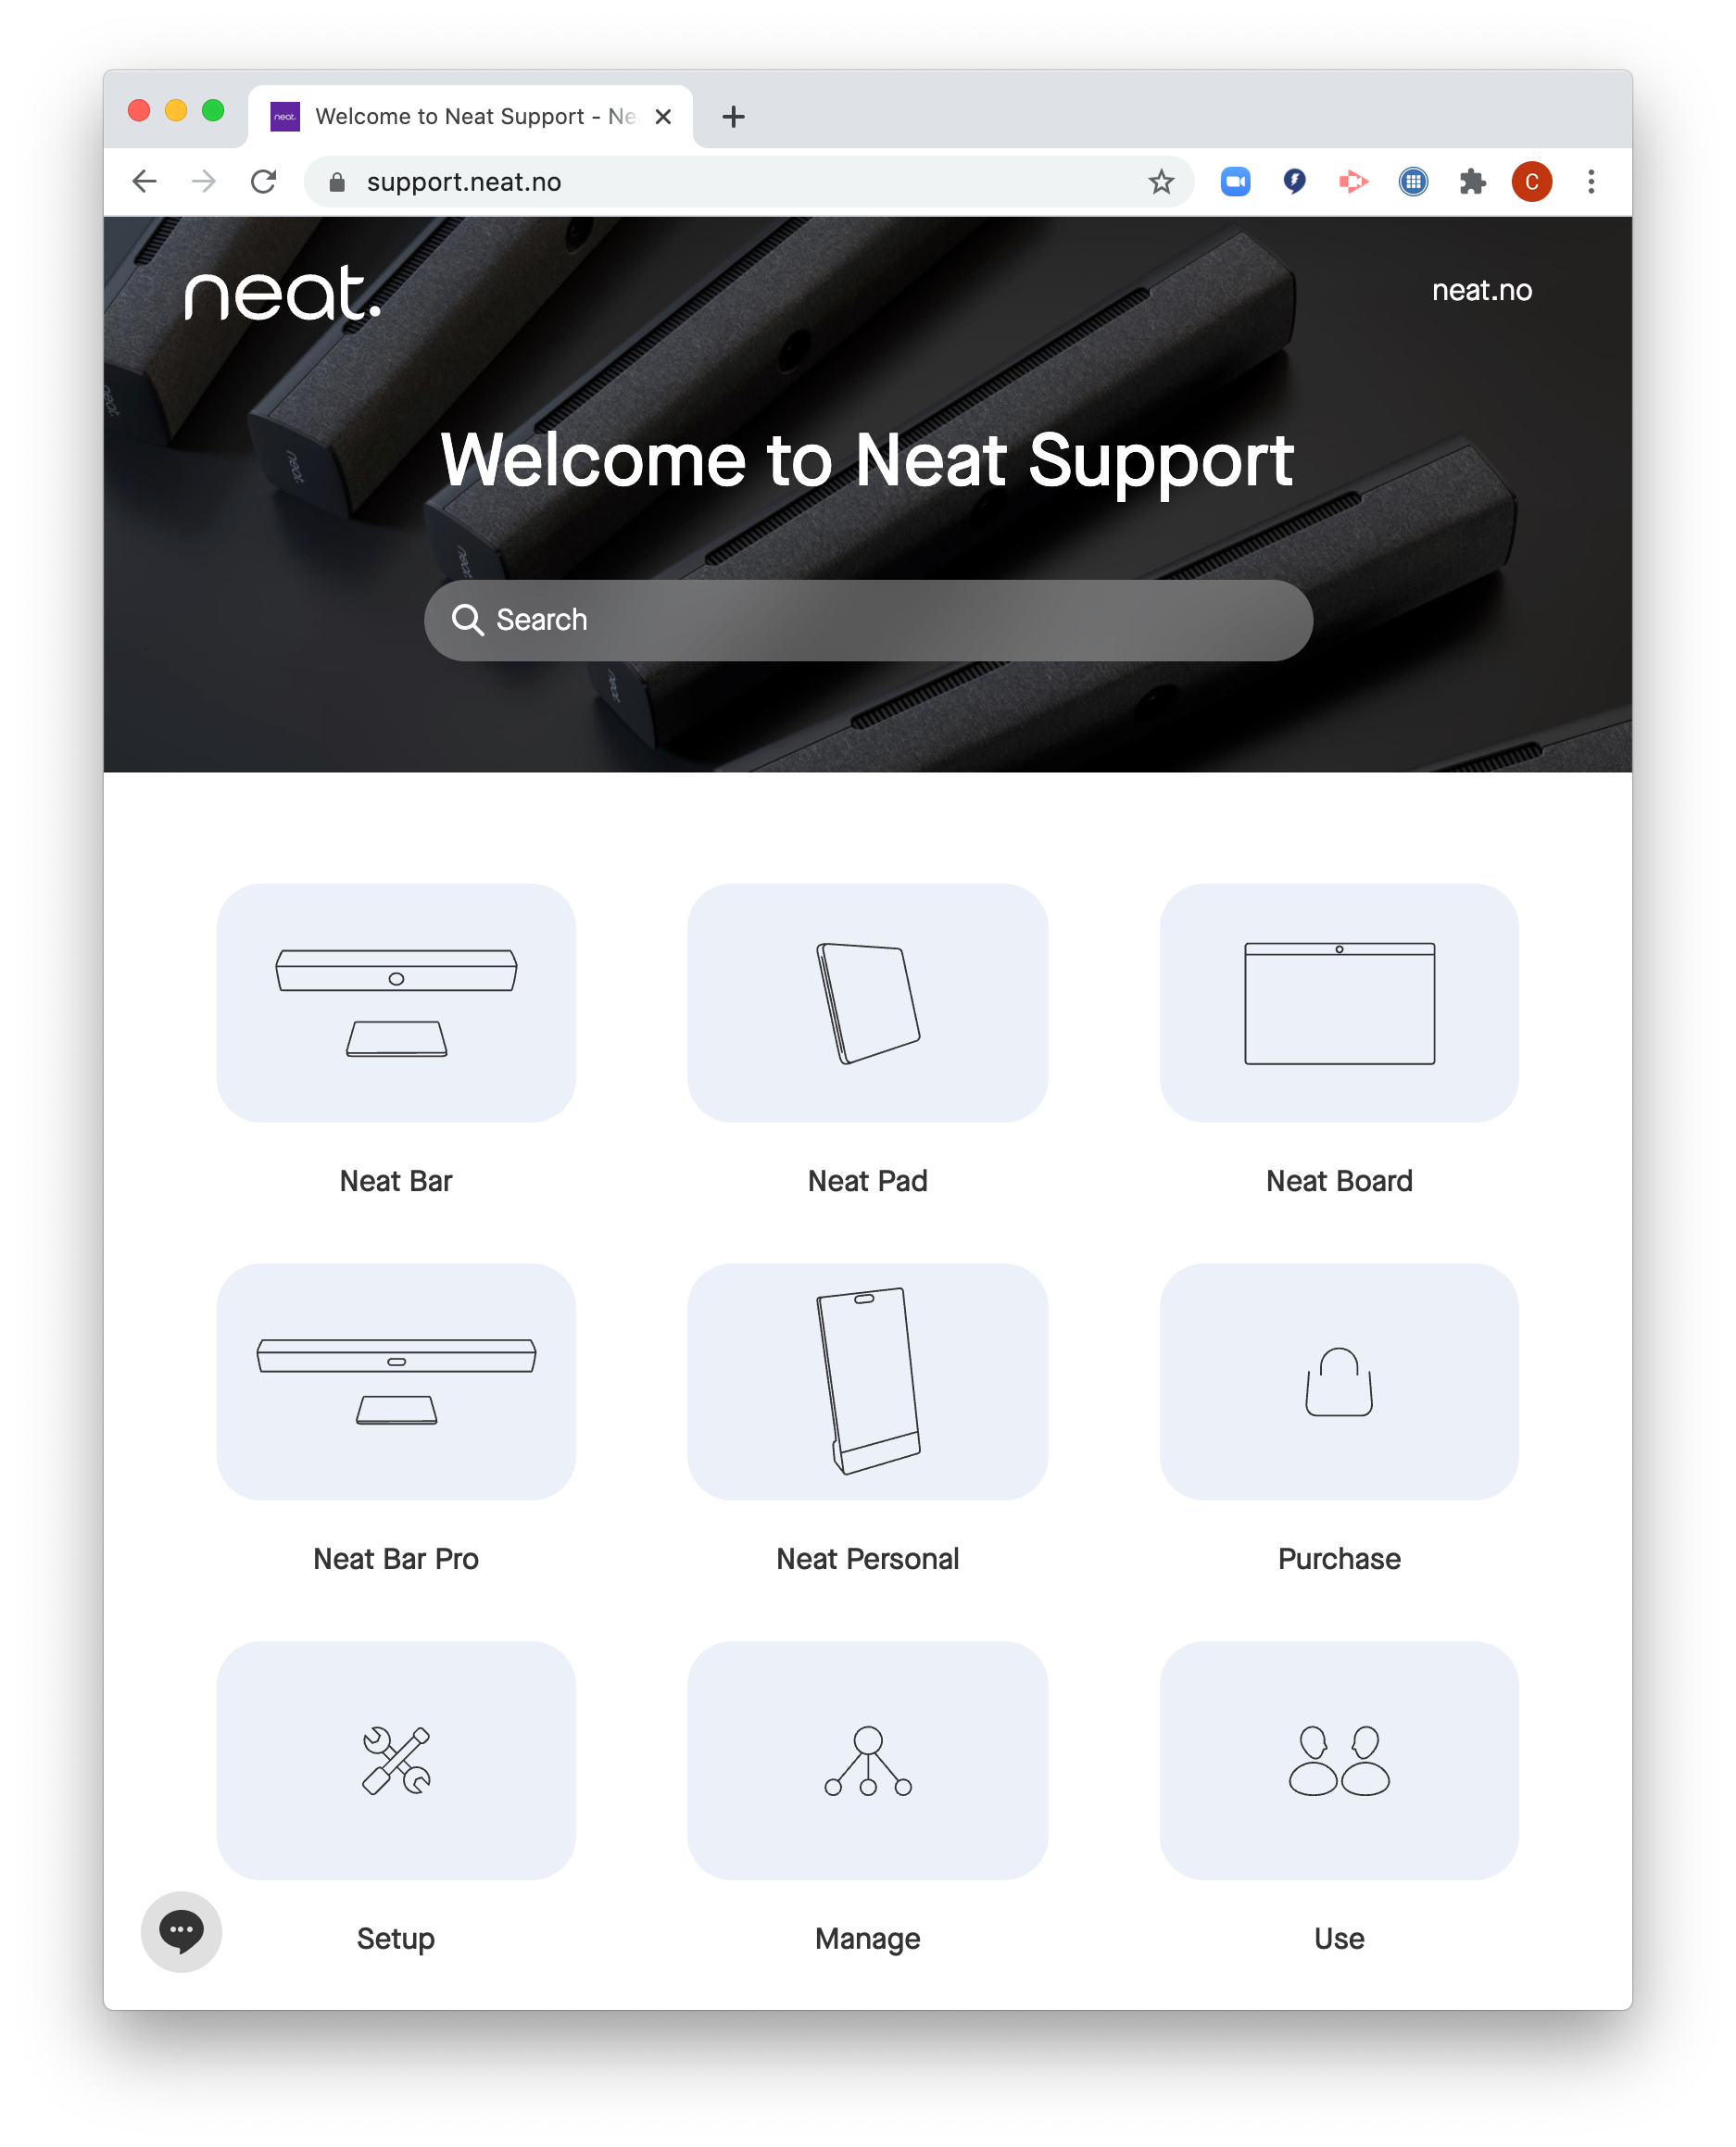 Link to the official Neat Support site